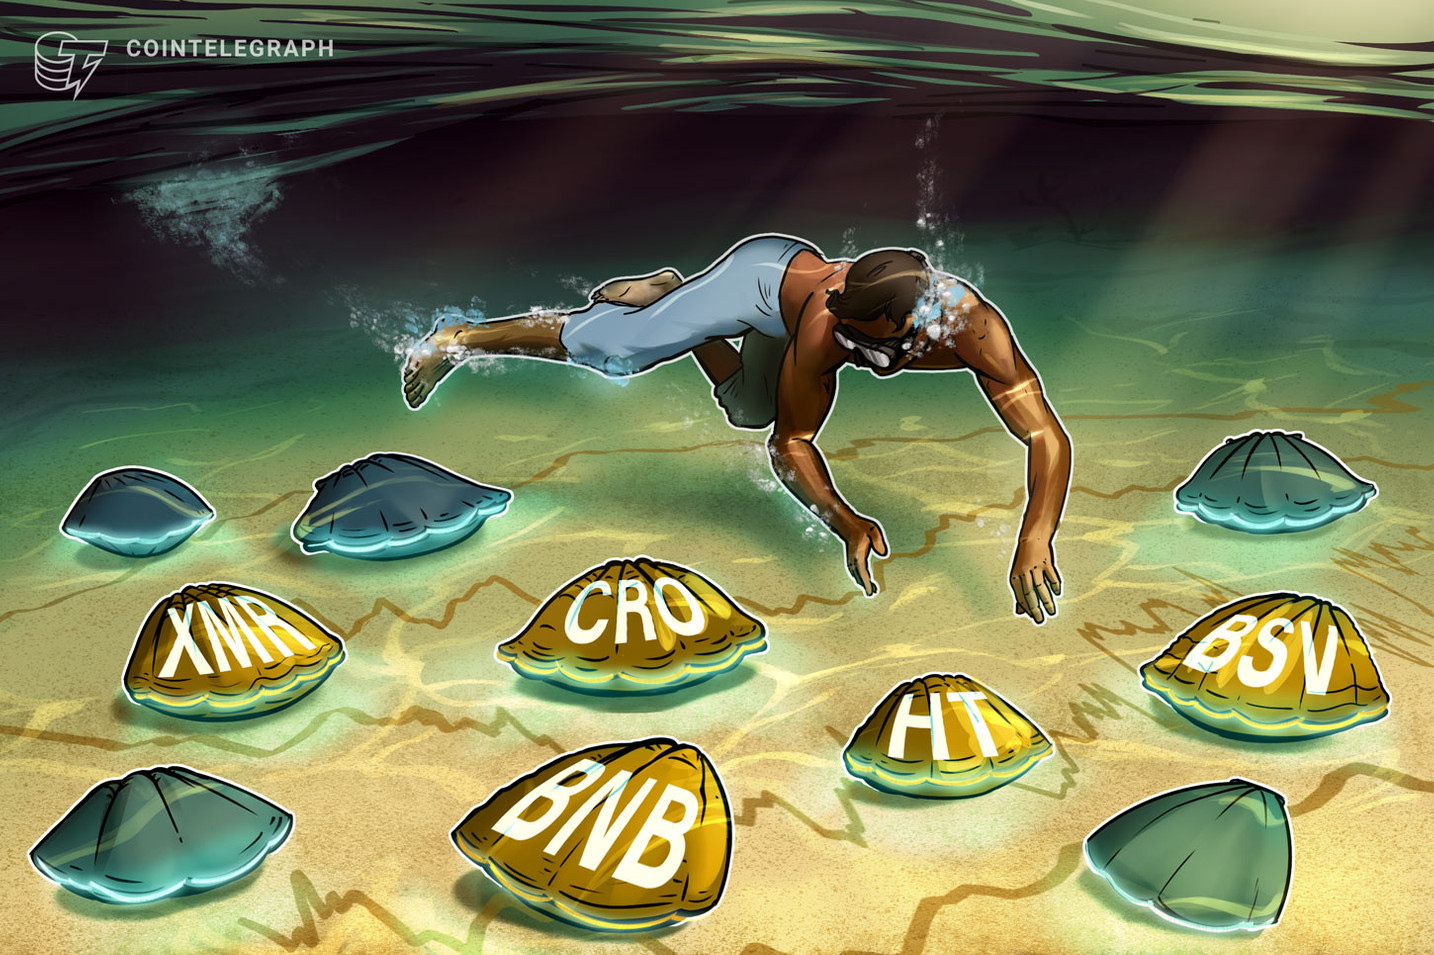 Top 5 Cryptos Not Named Bitcoin This Week (Mar 29): XMR, BNB, HT, CRO, BSV